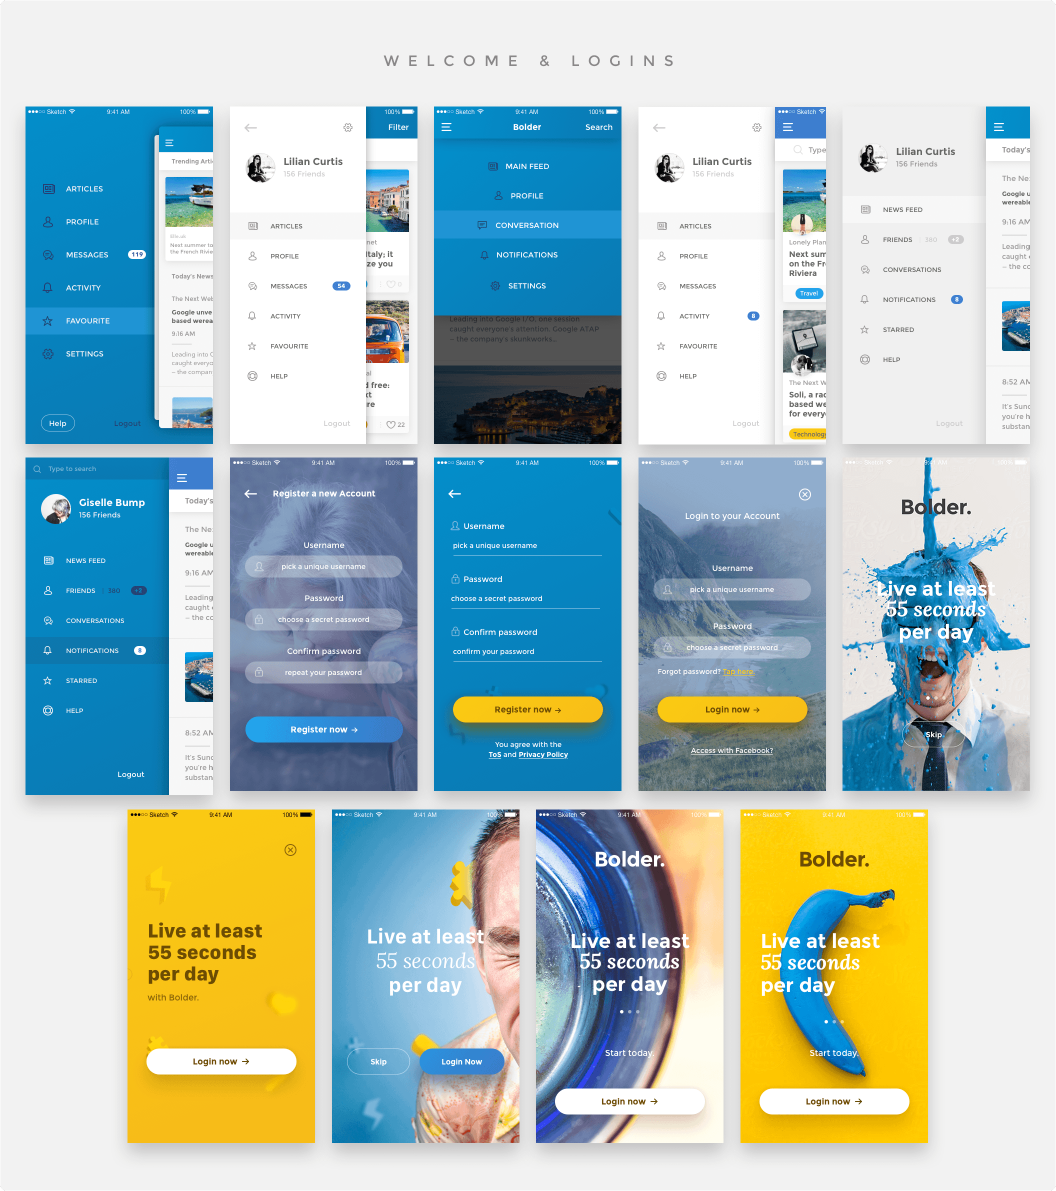 This Amazing Package Of 65 HQ Mobile Templates Will